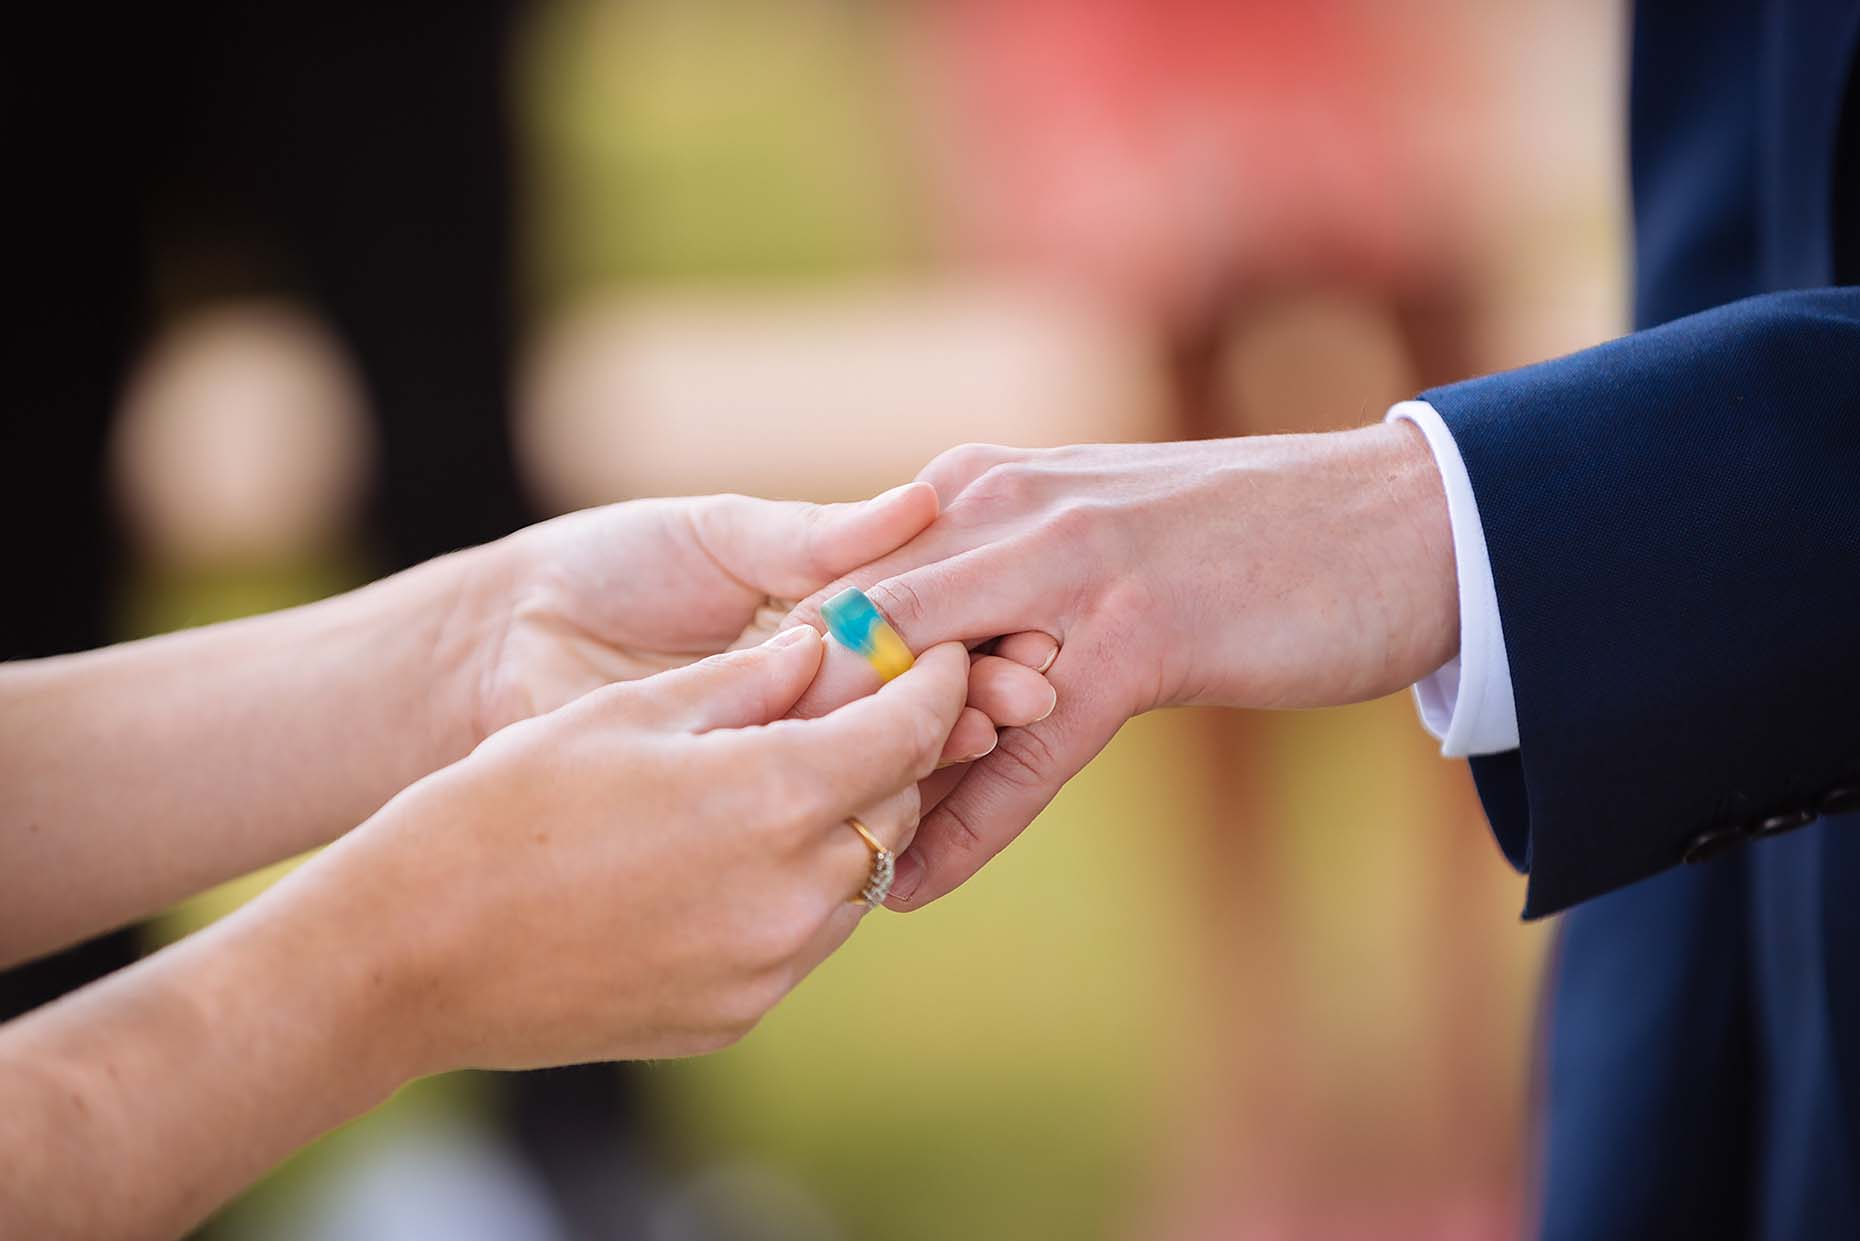 haribo-wedding-ring-ceremony-groom-hand-dorset-finger-27